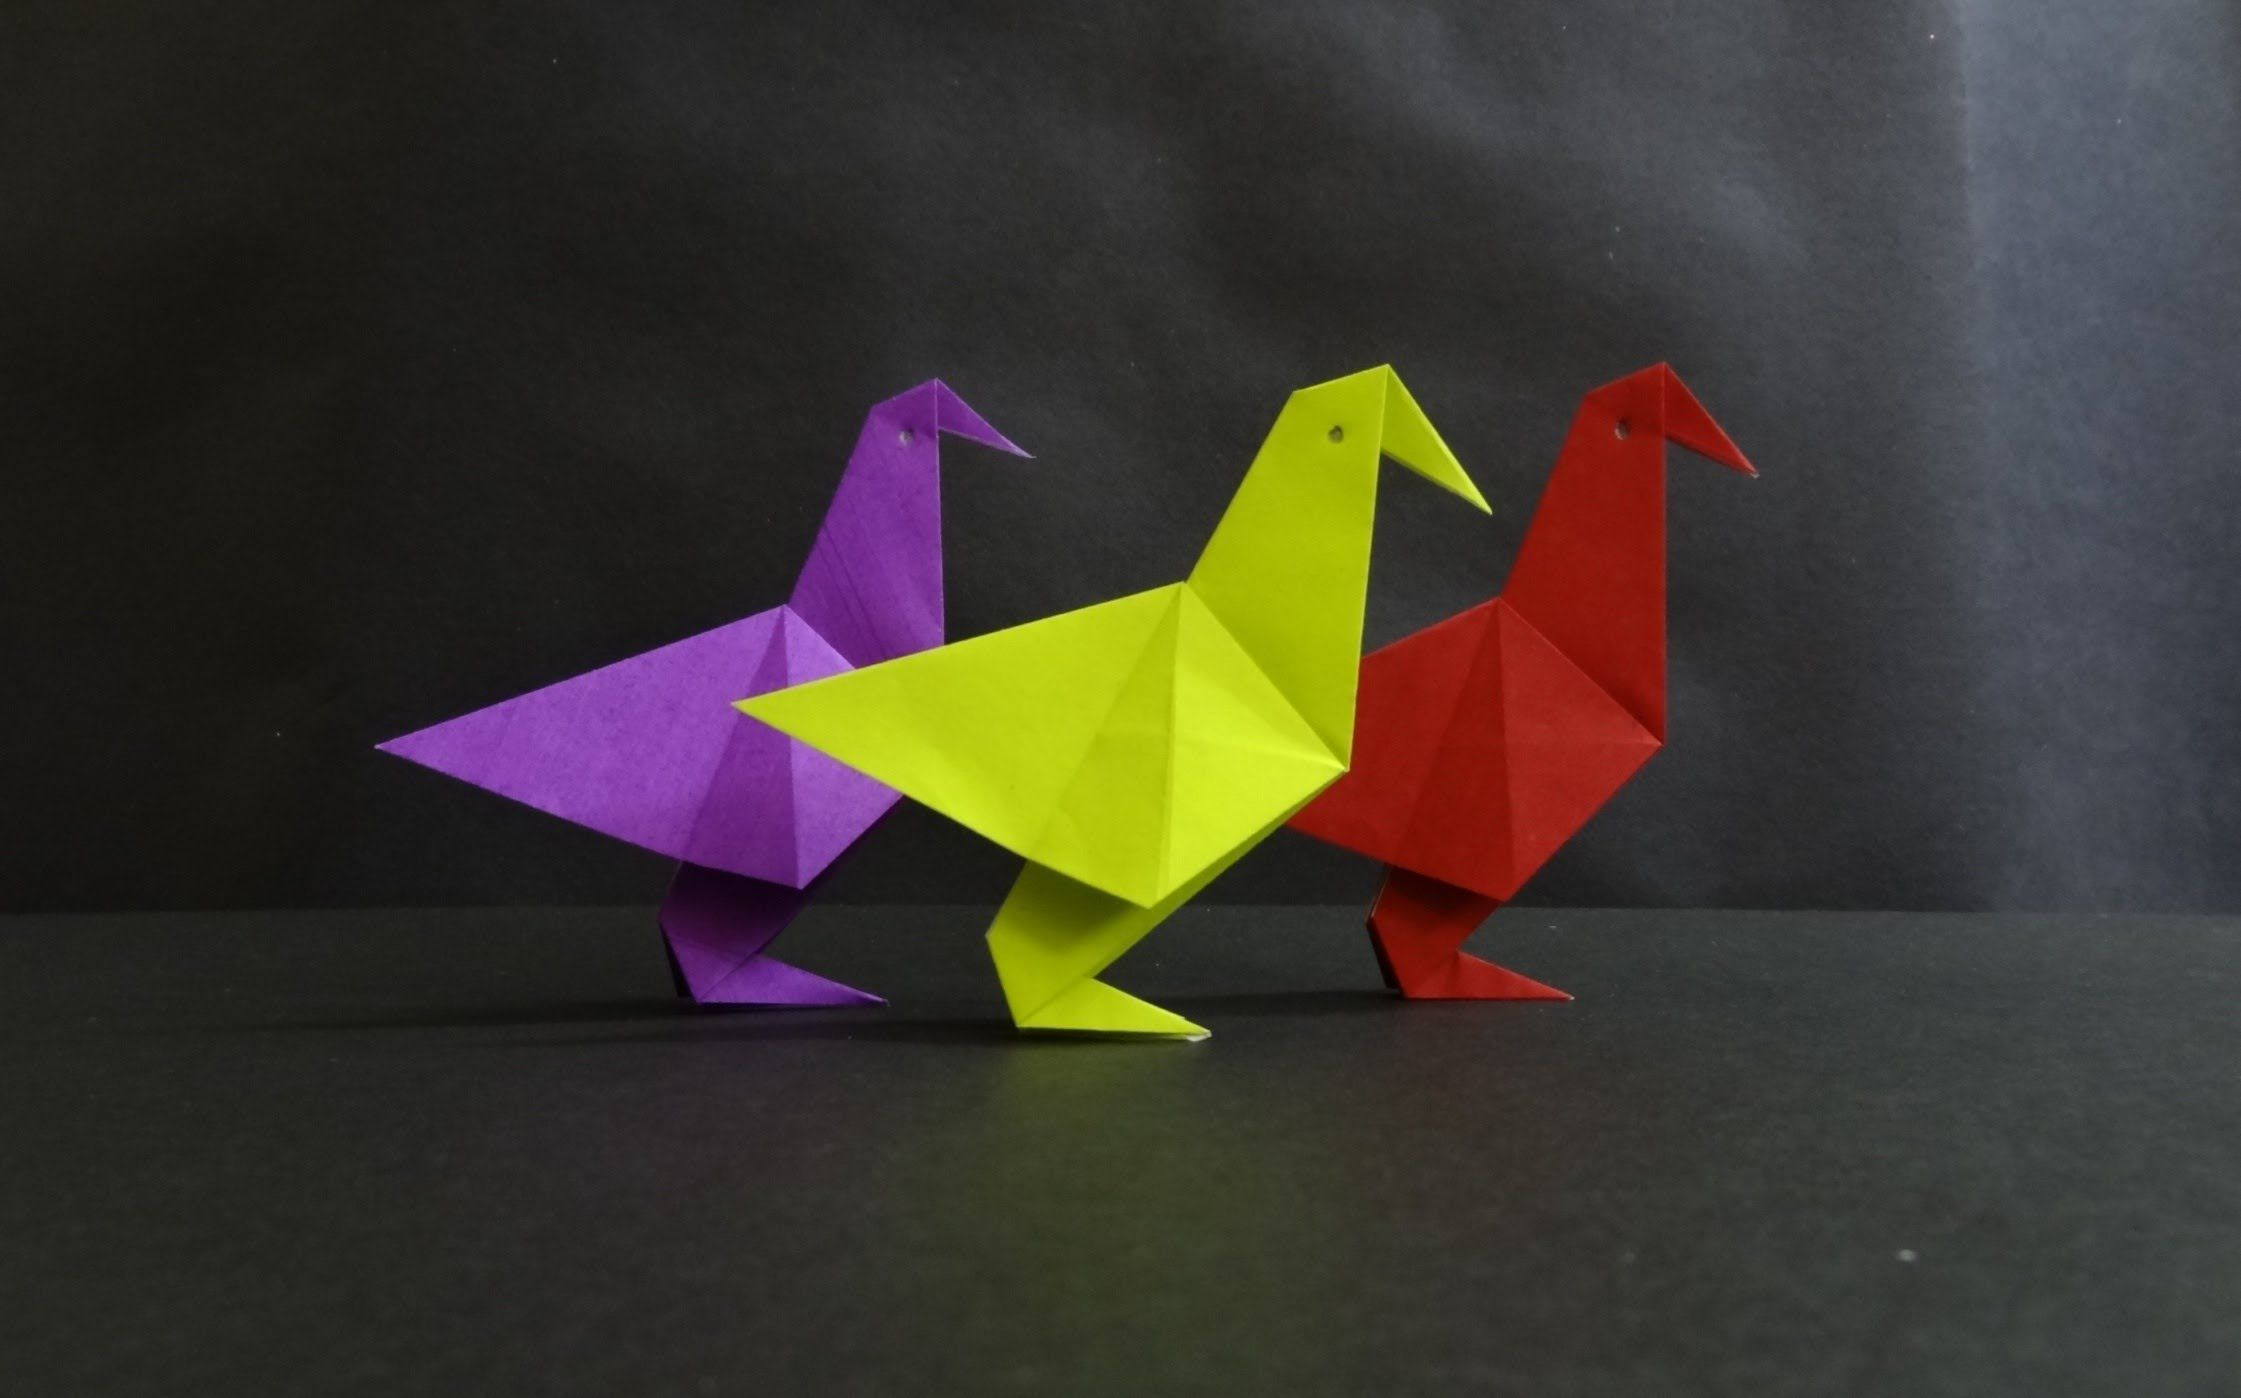 Origami bird tutorial how to fold a simple paper bird origami origami tutorial on how to fold an origami simple paper bird paper toys are easy to make and always attract young kids this simple paper bird can be jeuxipadfo Choice Image